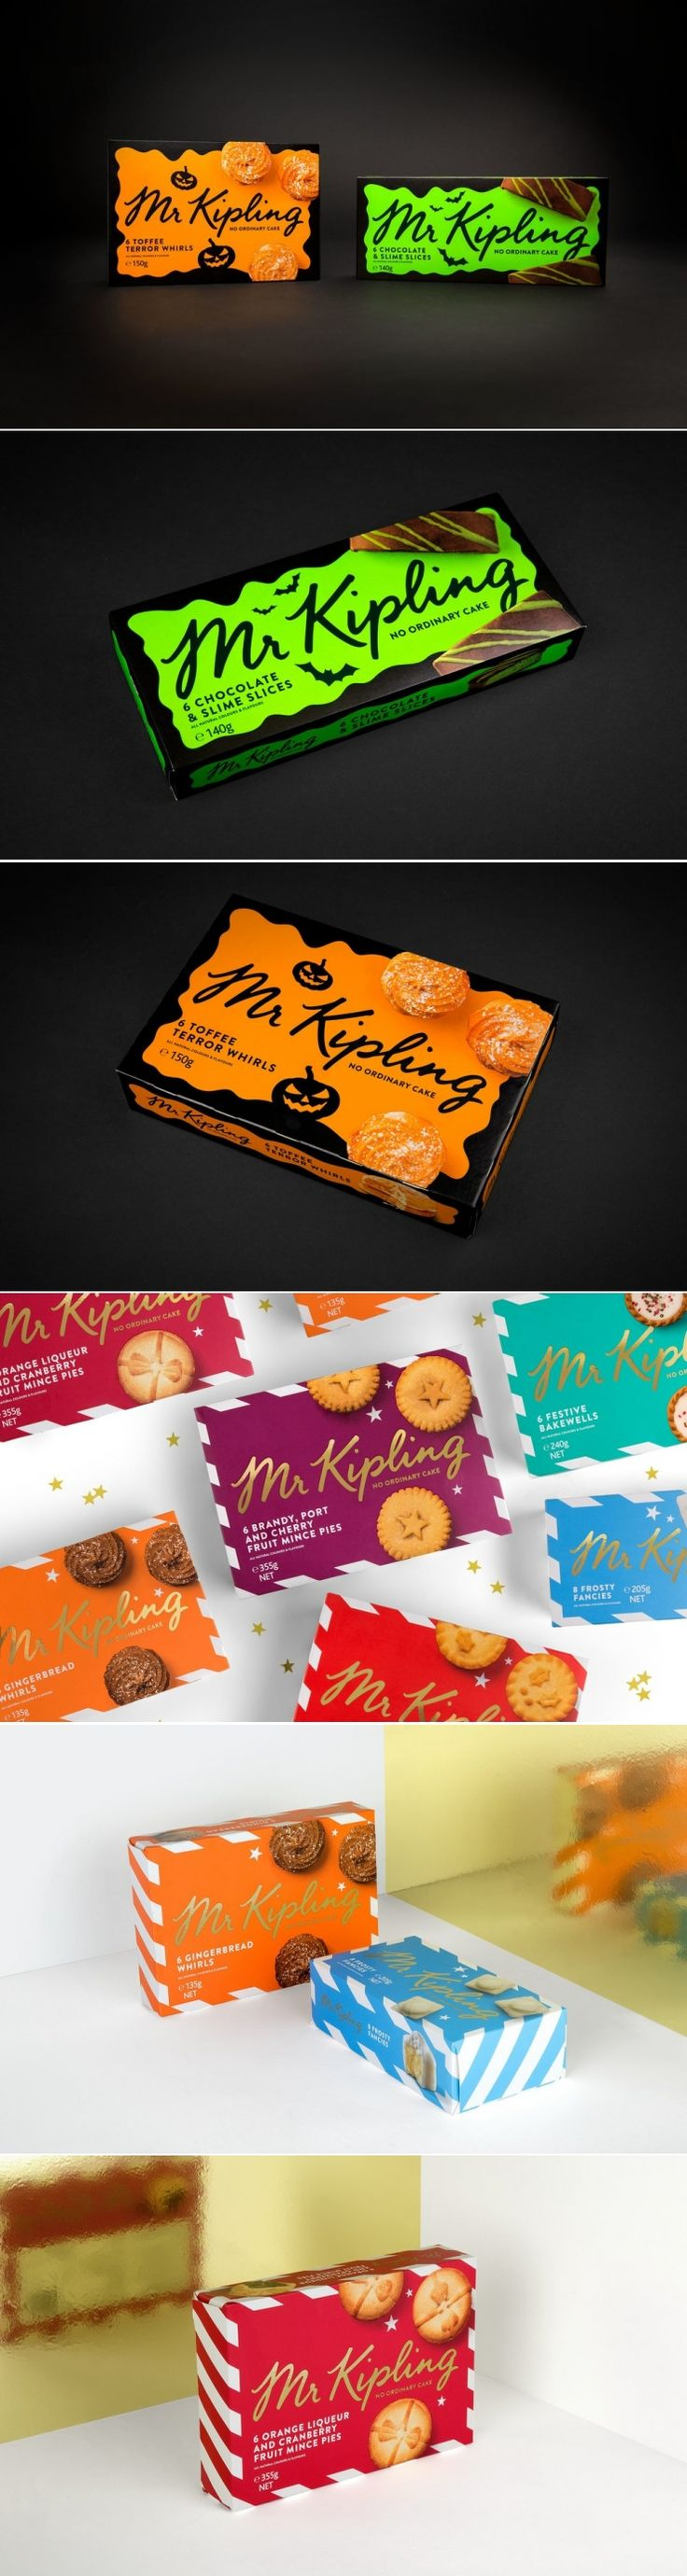 Check Out This Super Festive Packaging Just In Time For The Holidays — The Dieline | Packaging & Branding Design & Innovation News